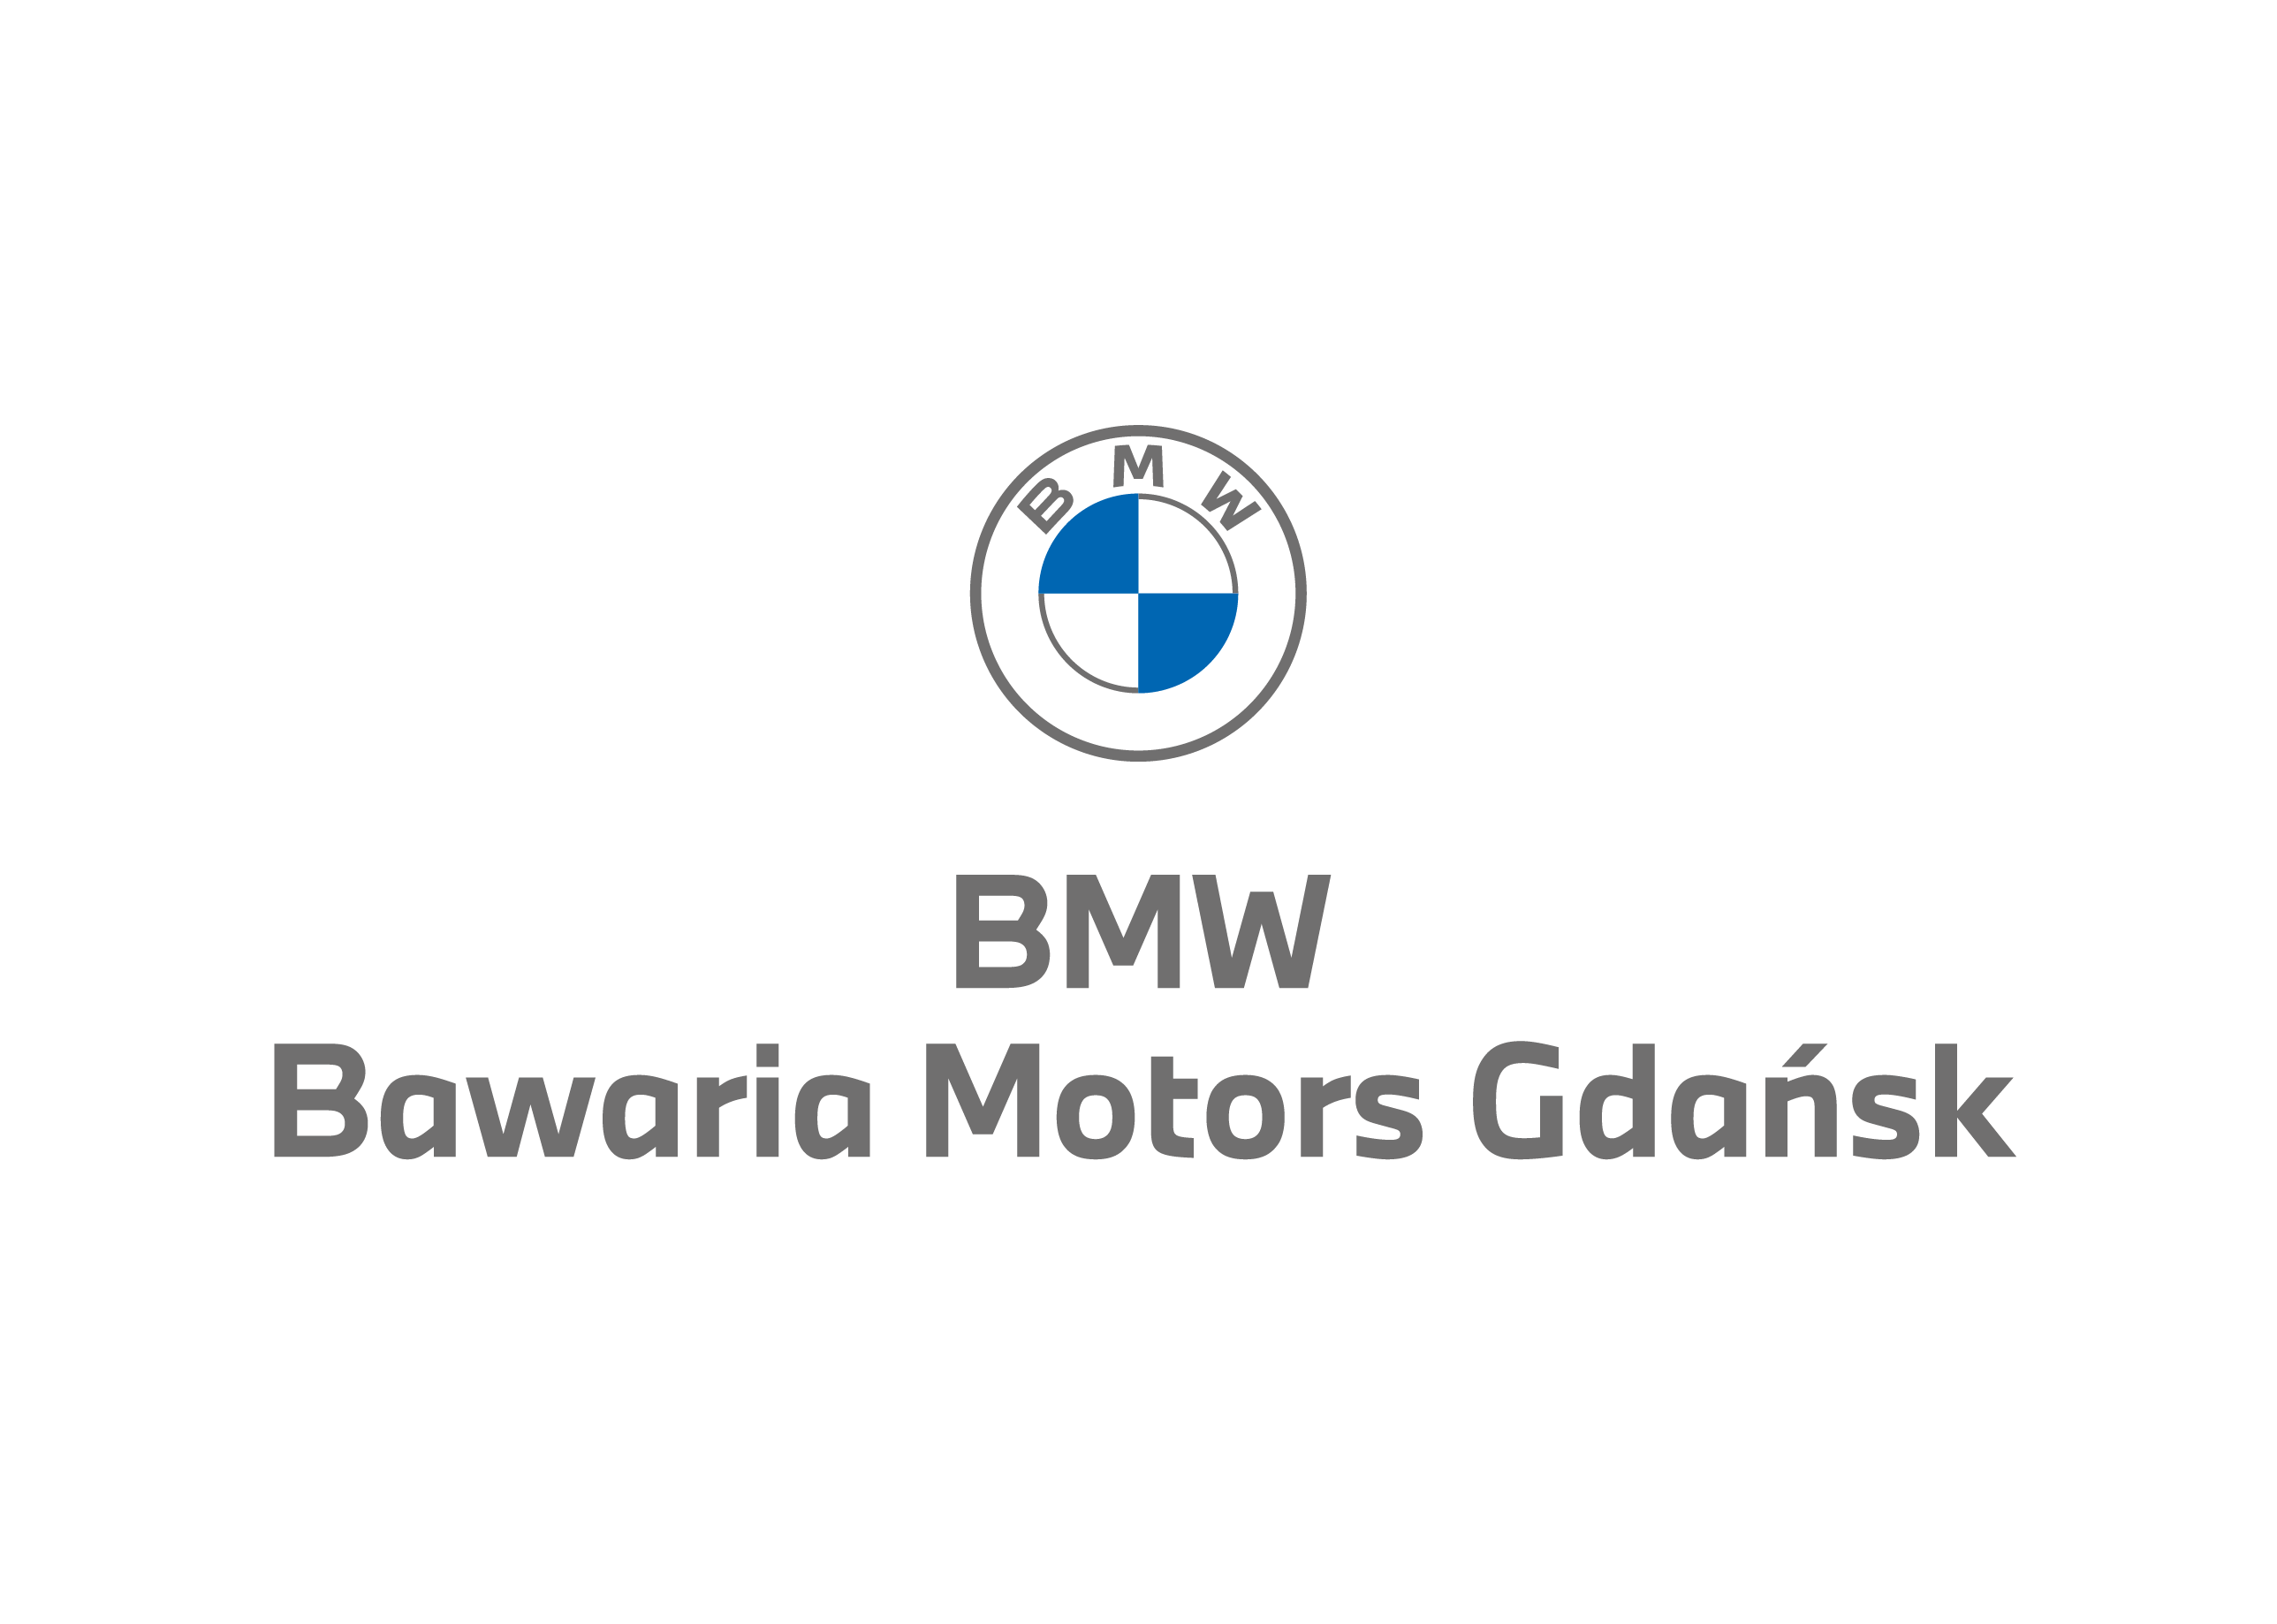 BMW Bawaria Motors